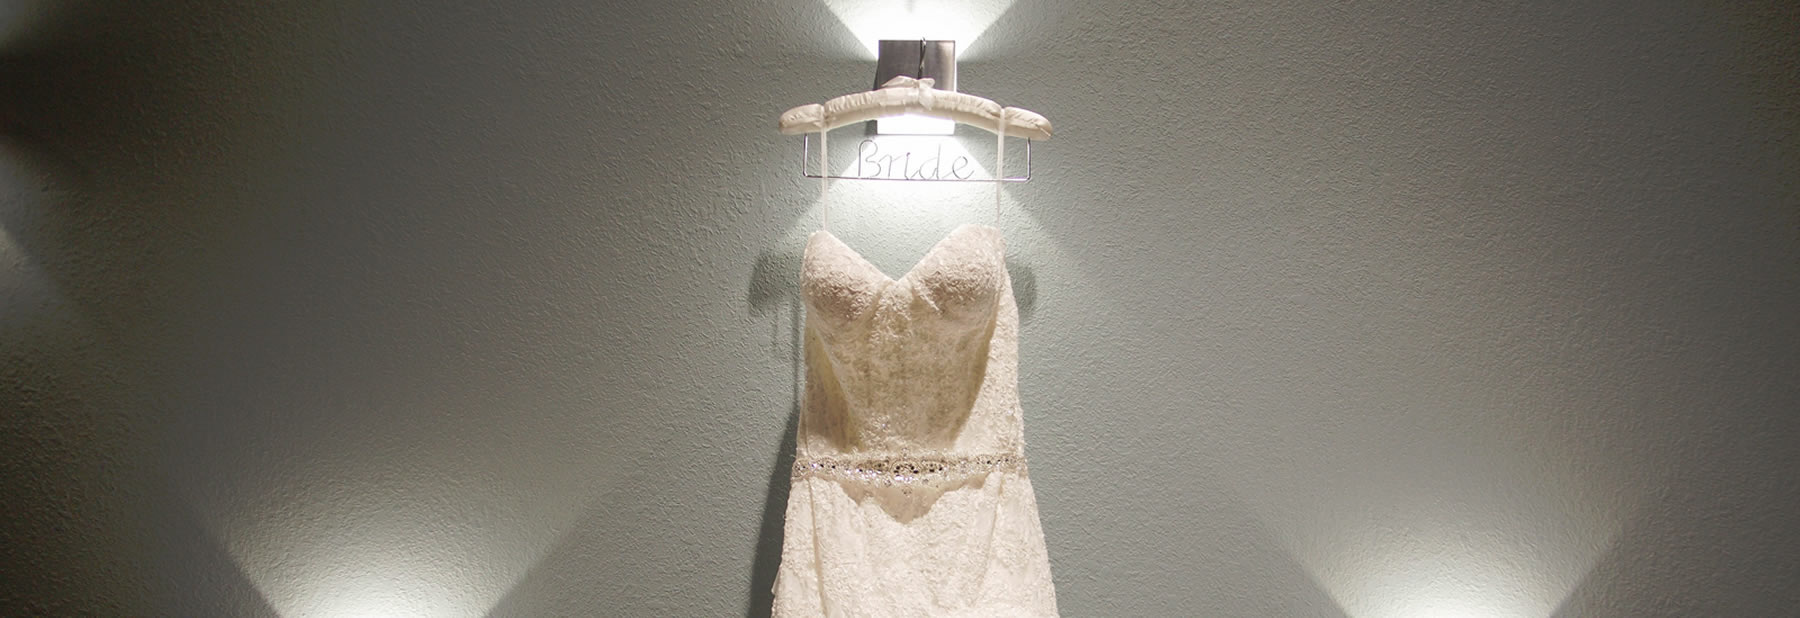 Wedding dress hanging on wall surrounded by lights